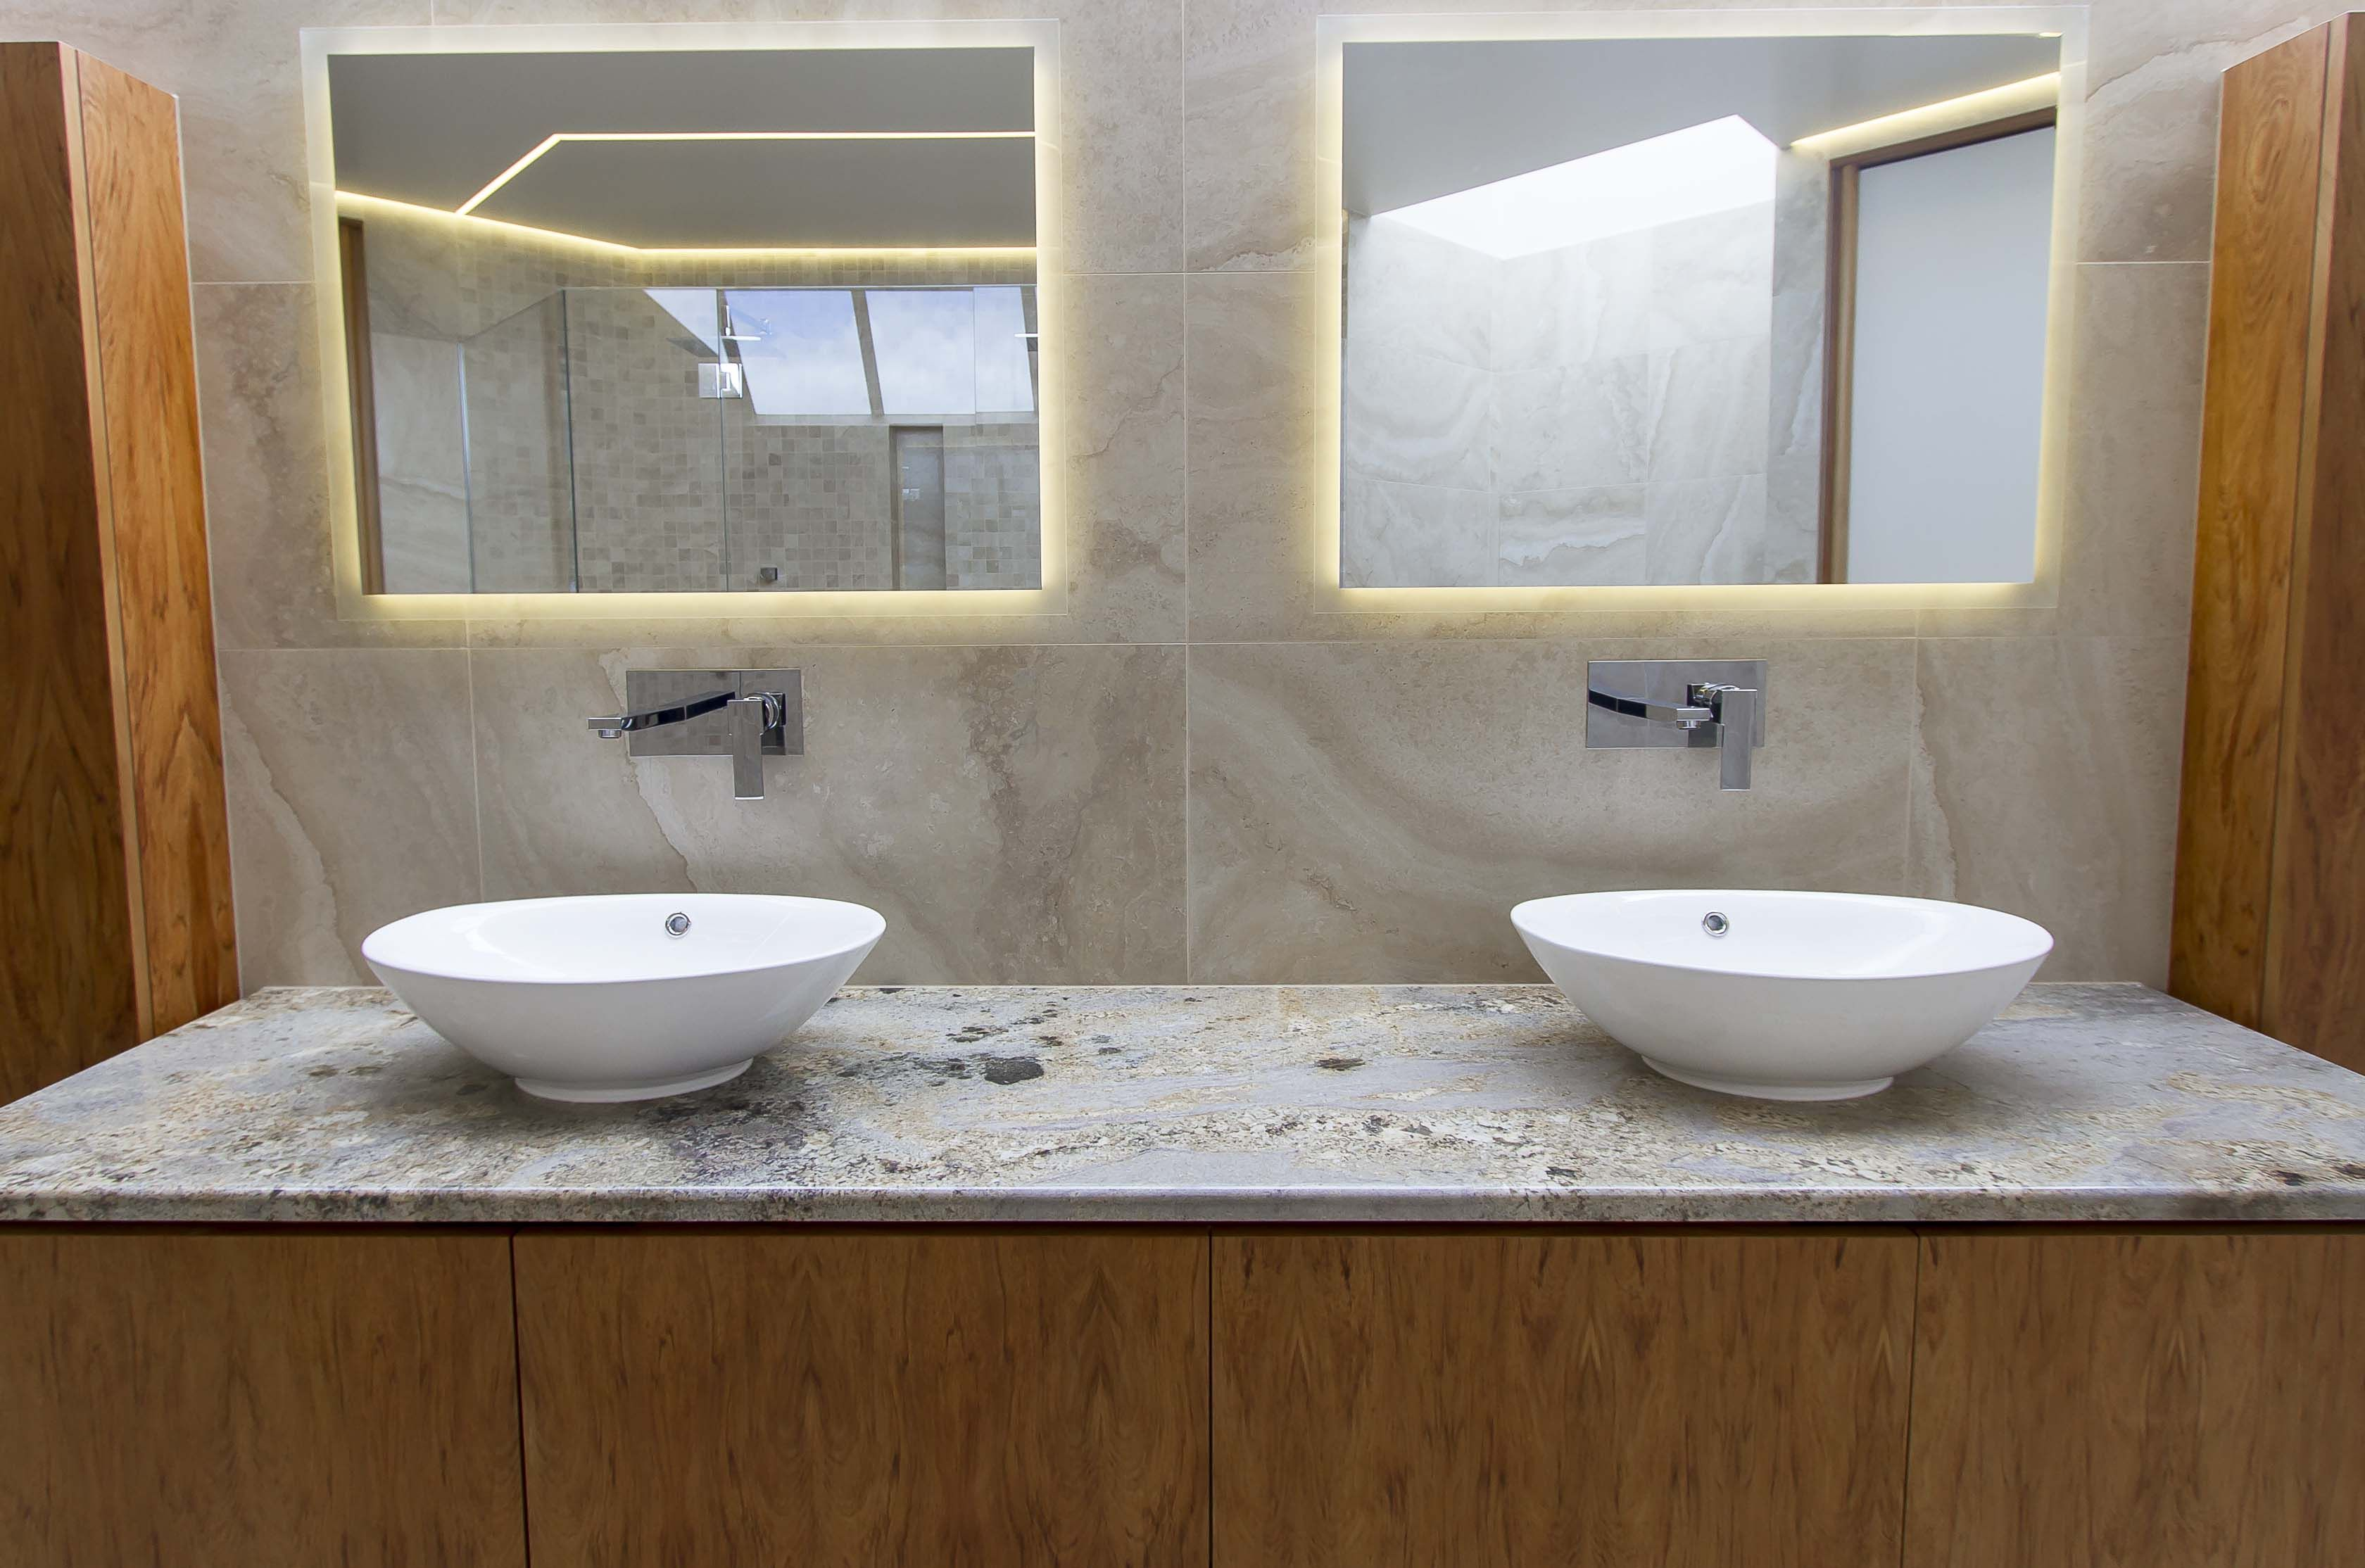 Bathroom Mirrors Lights Behind led strips used as back light behind mirror | led warehouse led